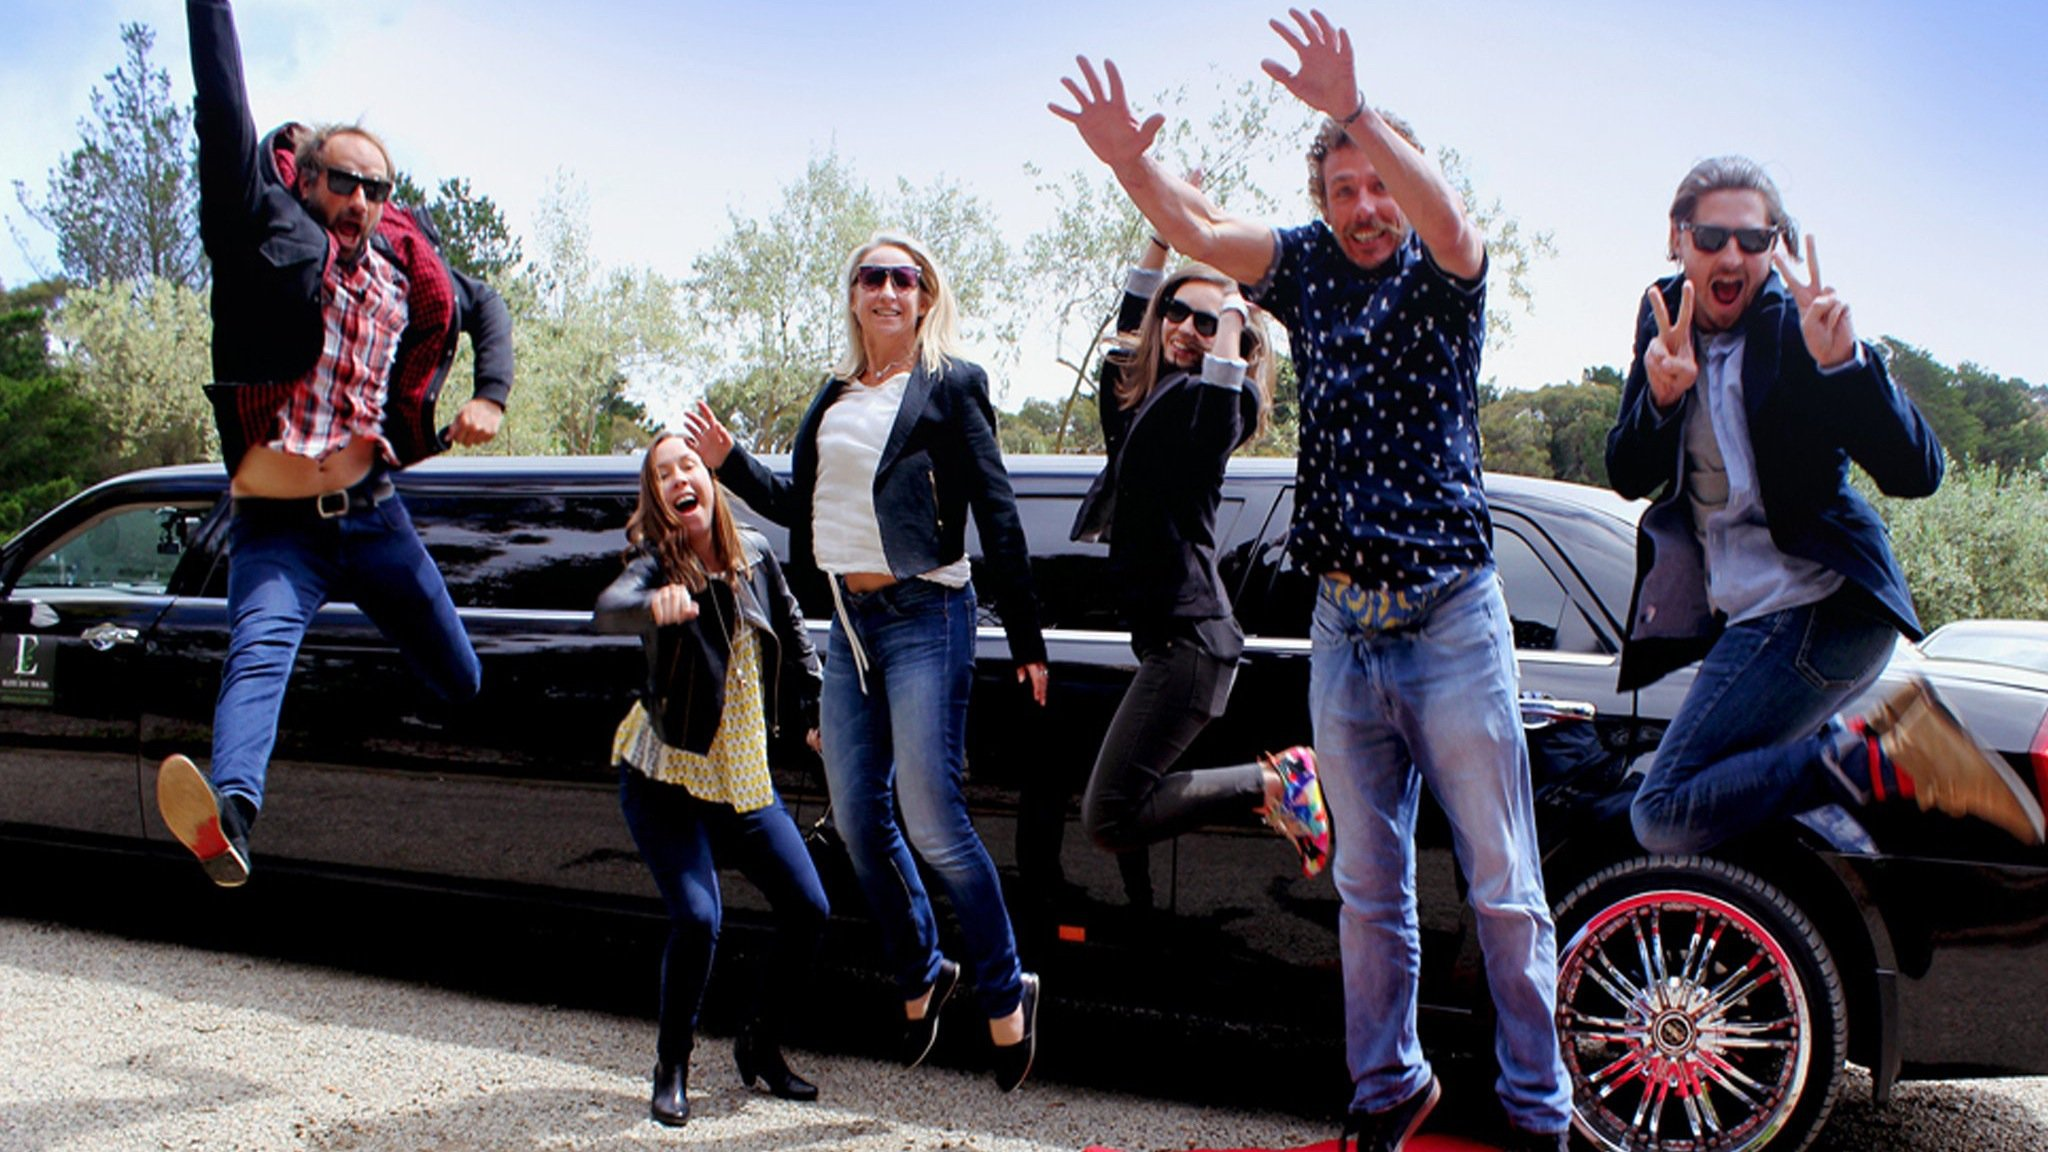 Groups of 6 or more travel in a stretch limousine with sparkling wine